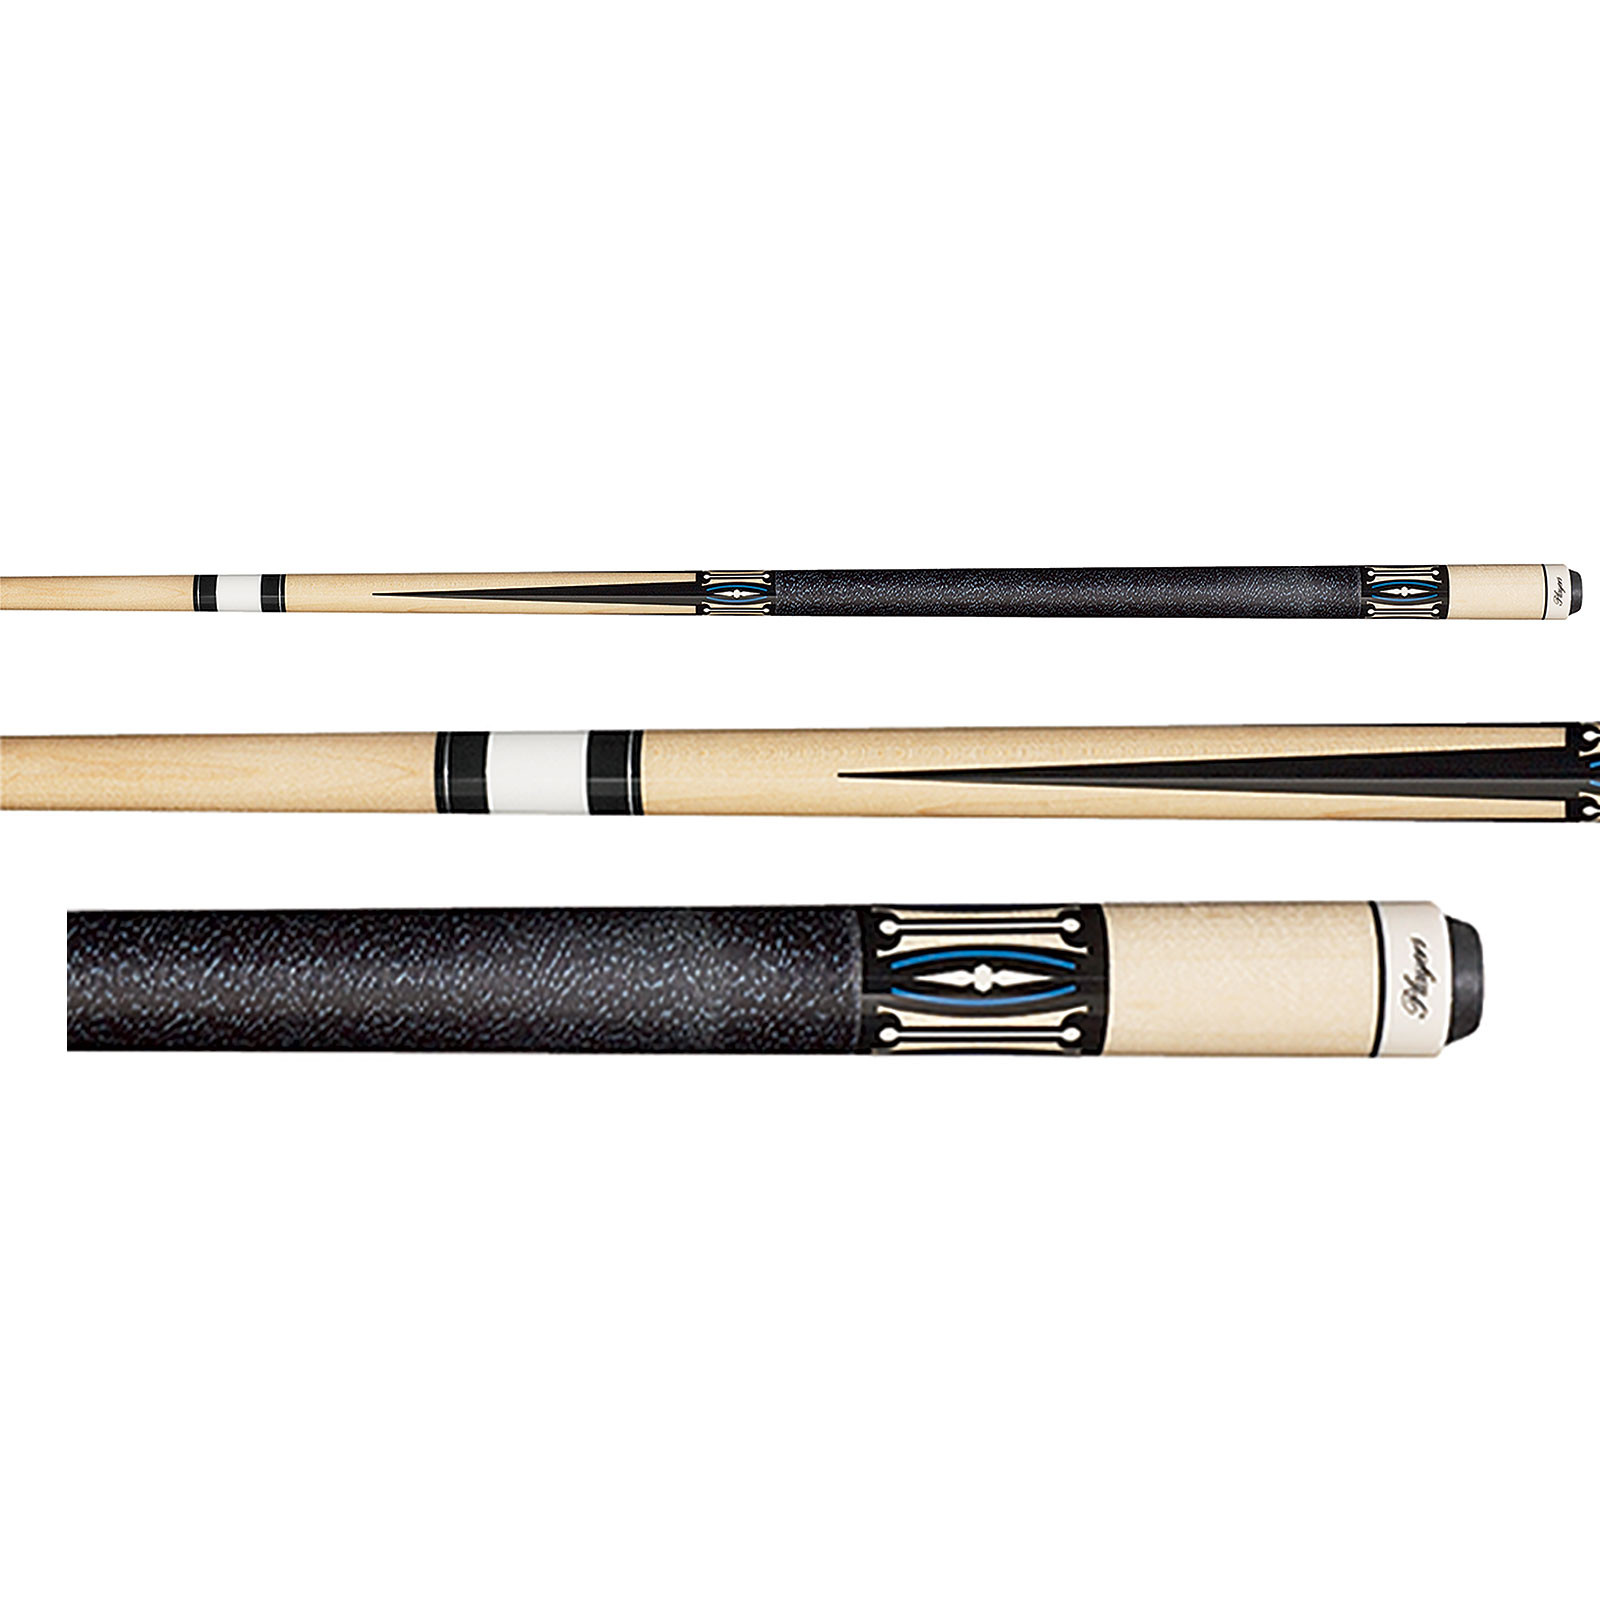 Players G 2310 Natural Maple Pool Cue Stick